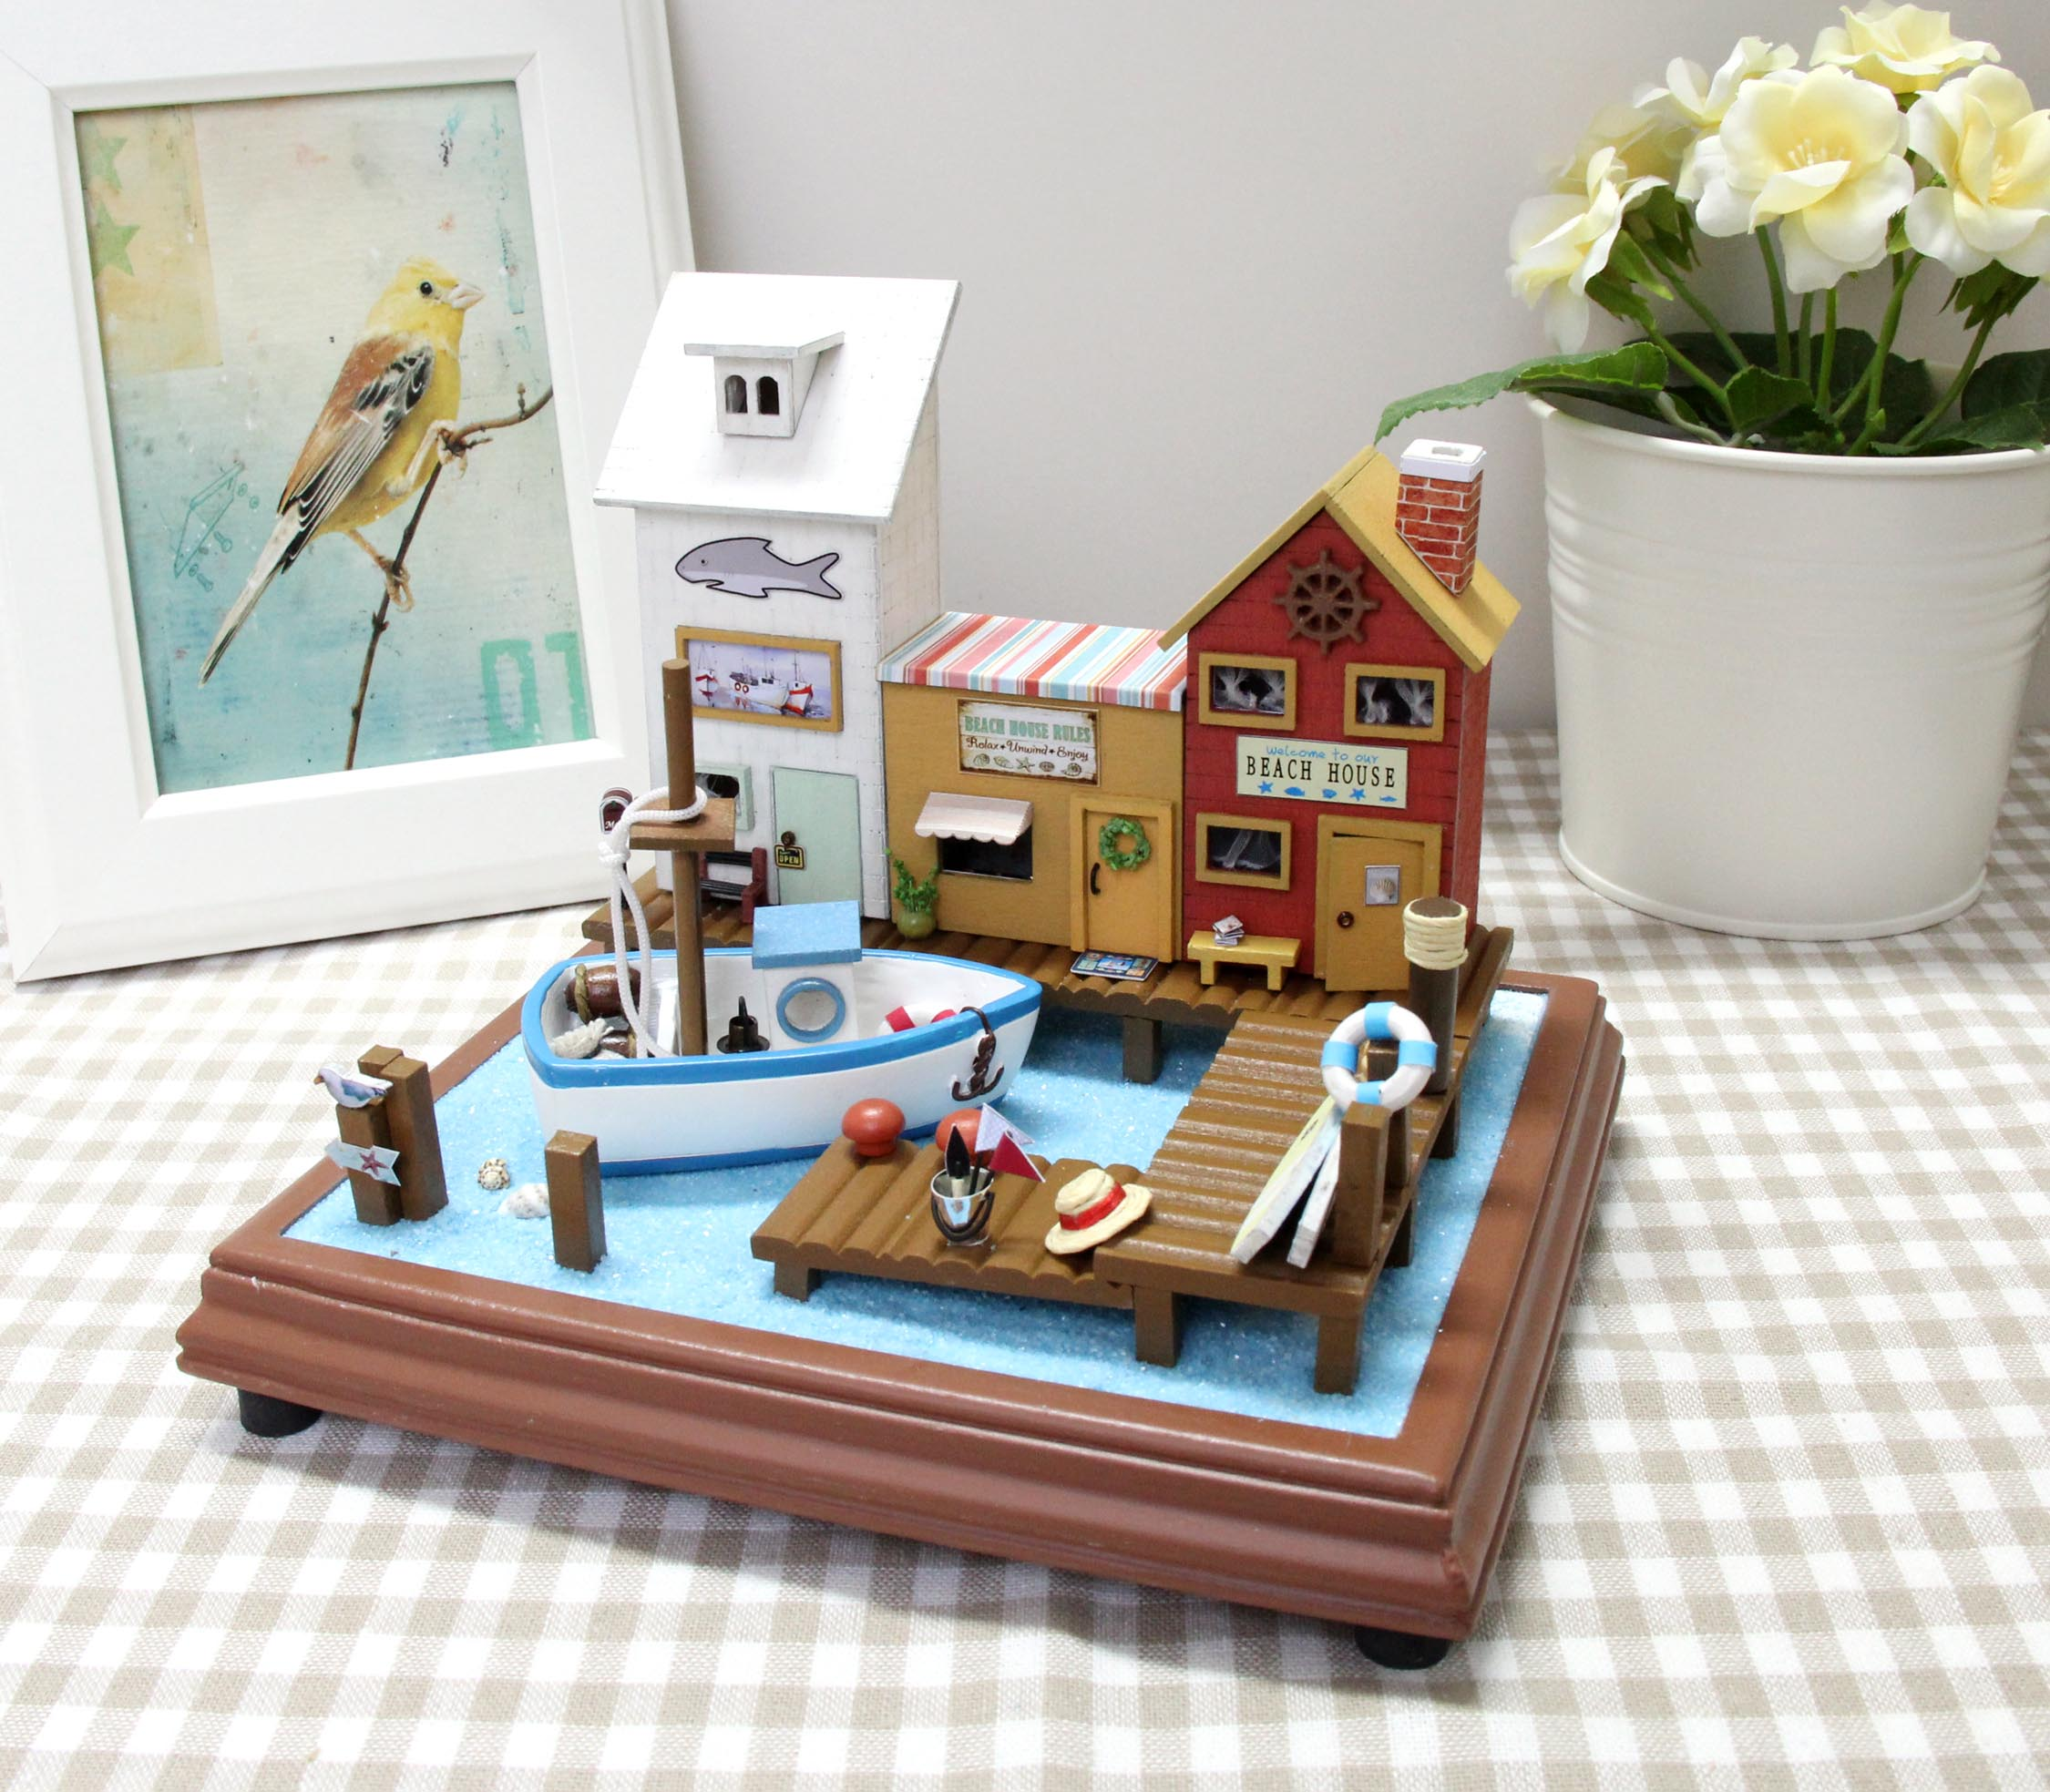 Assembled model House Set with Furniture Miniature 3D Wooden Dollhouse LED Handmade Toys For Children  T016#